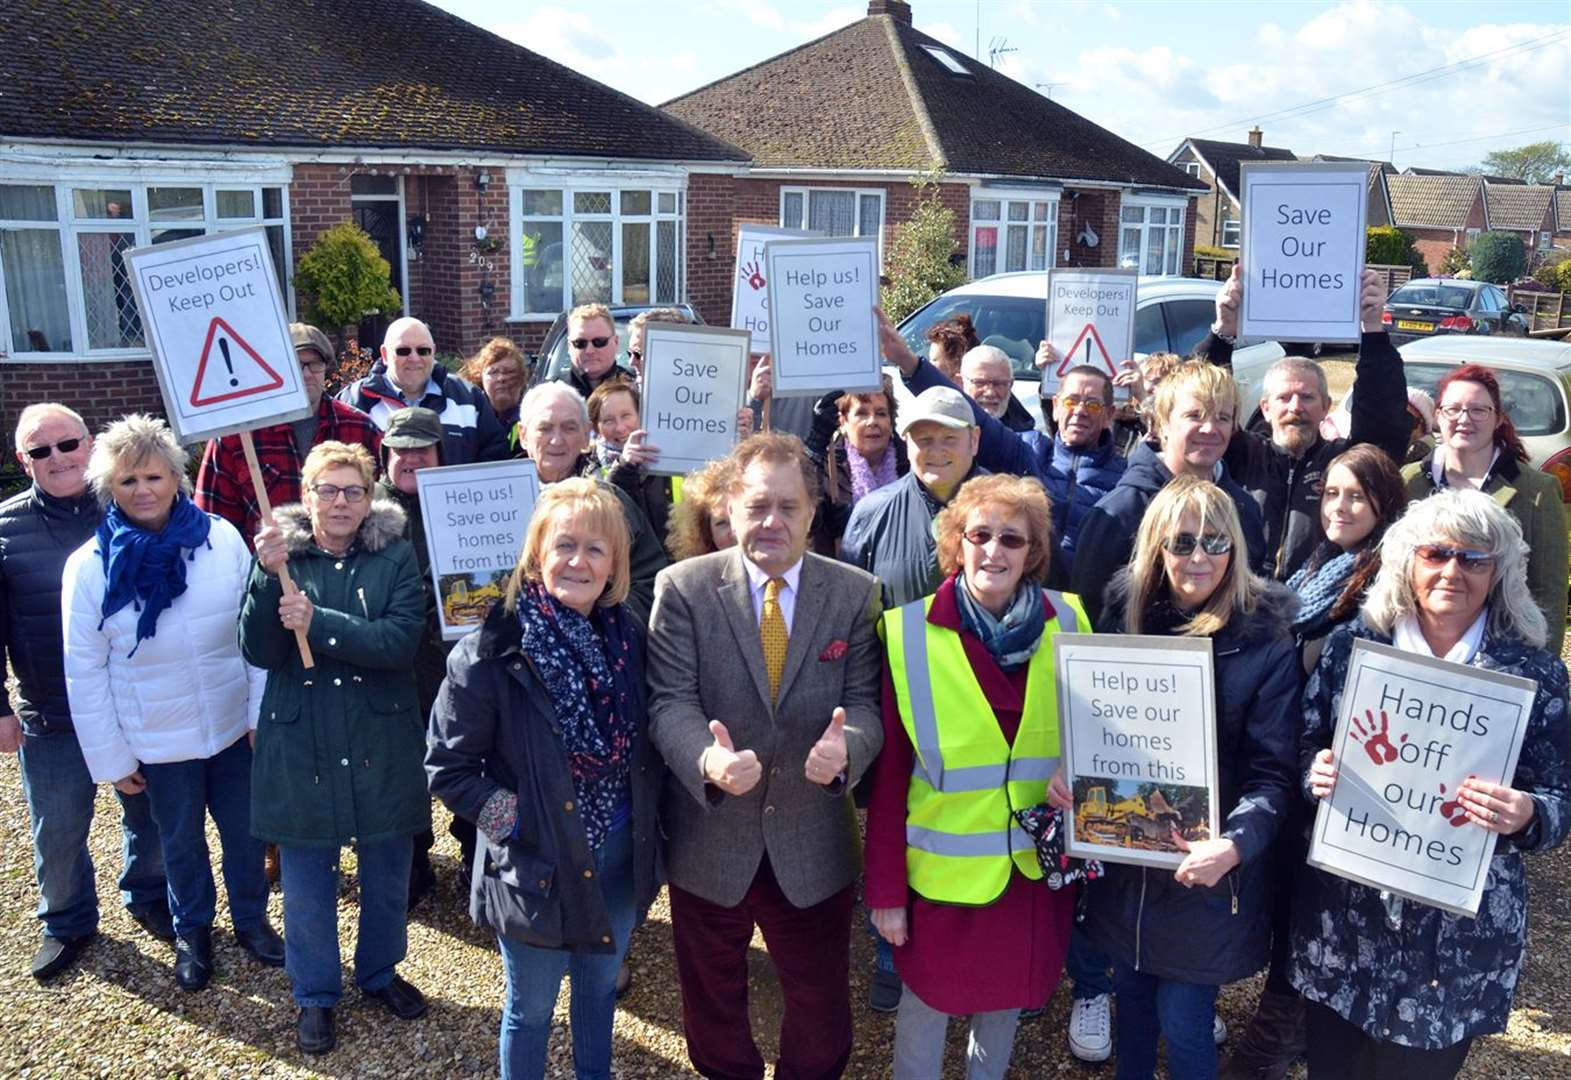 Spalding residents: We'll fight to save homes